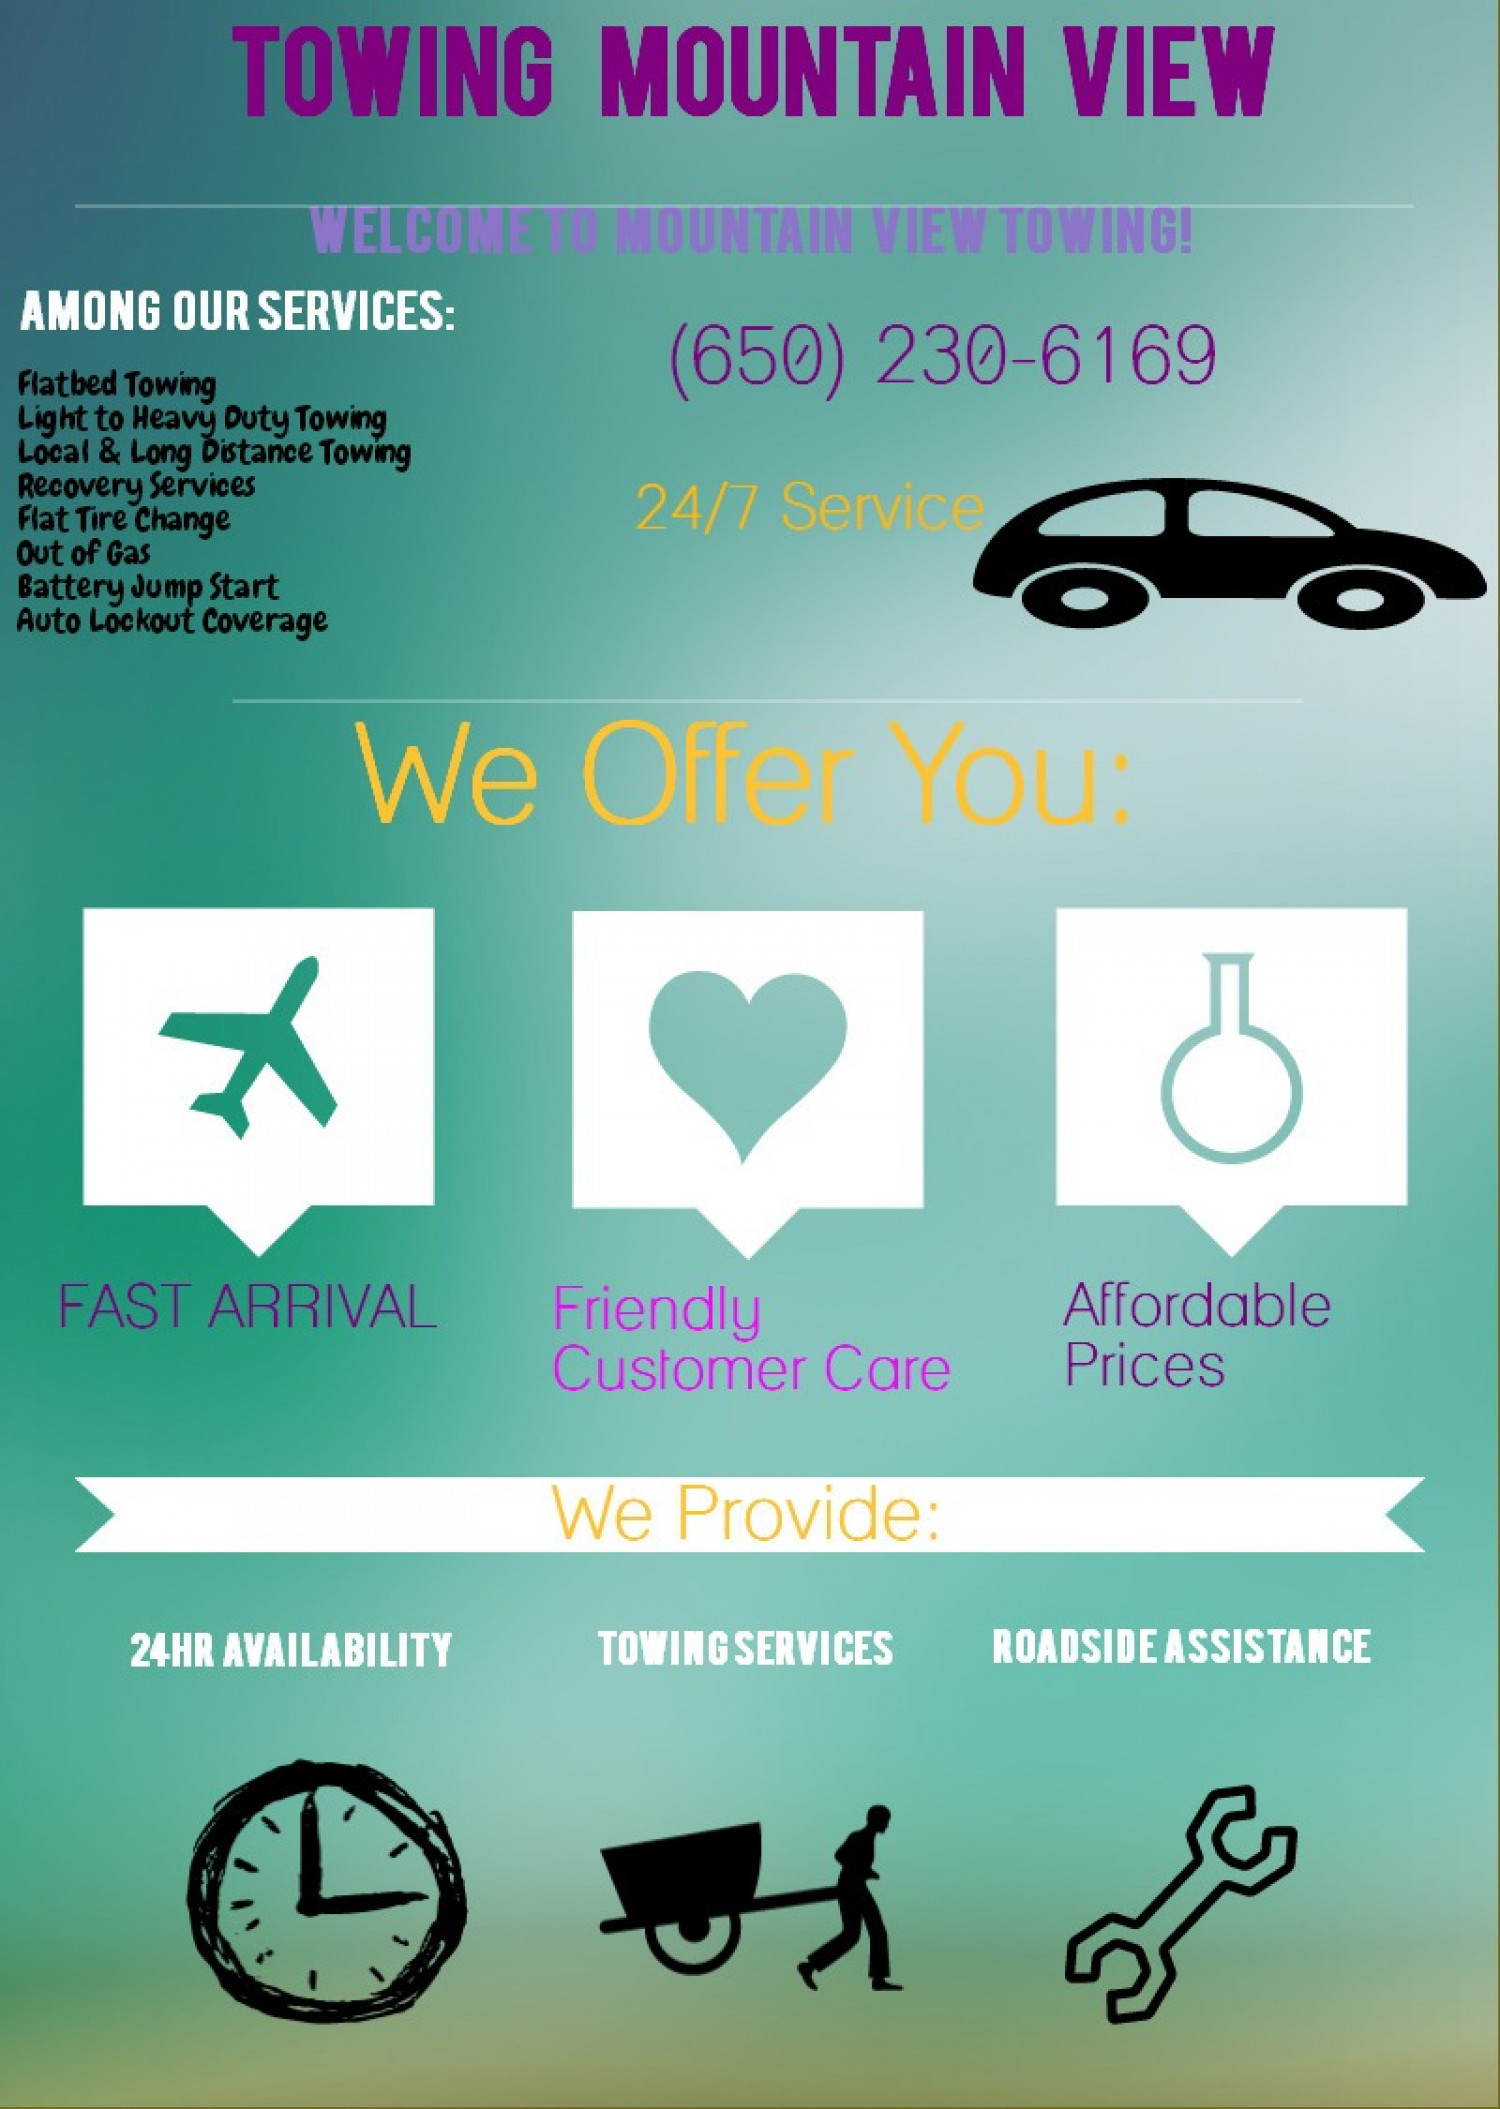 Towing Mountain View Infographic